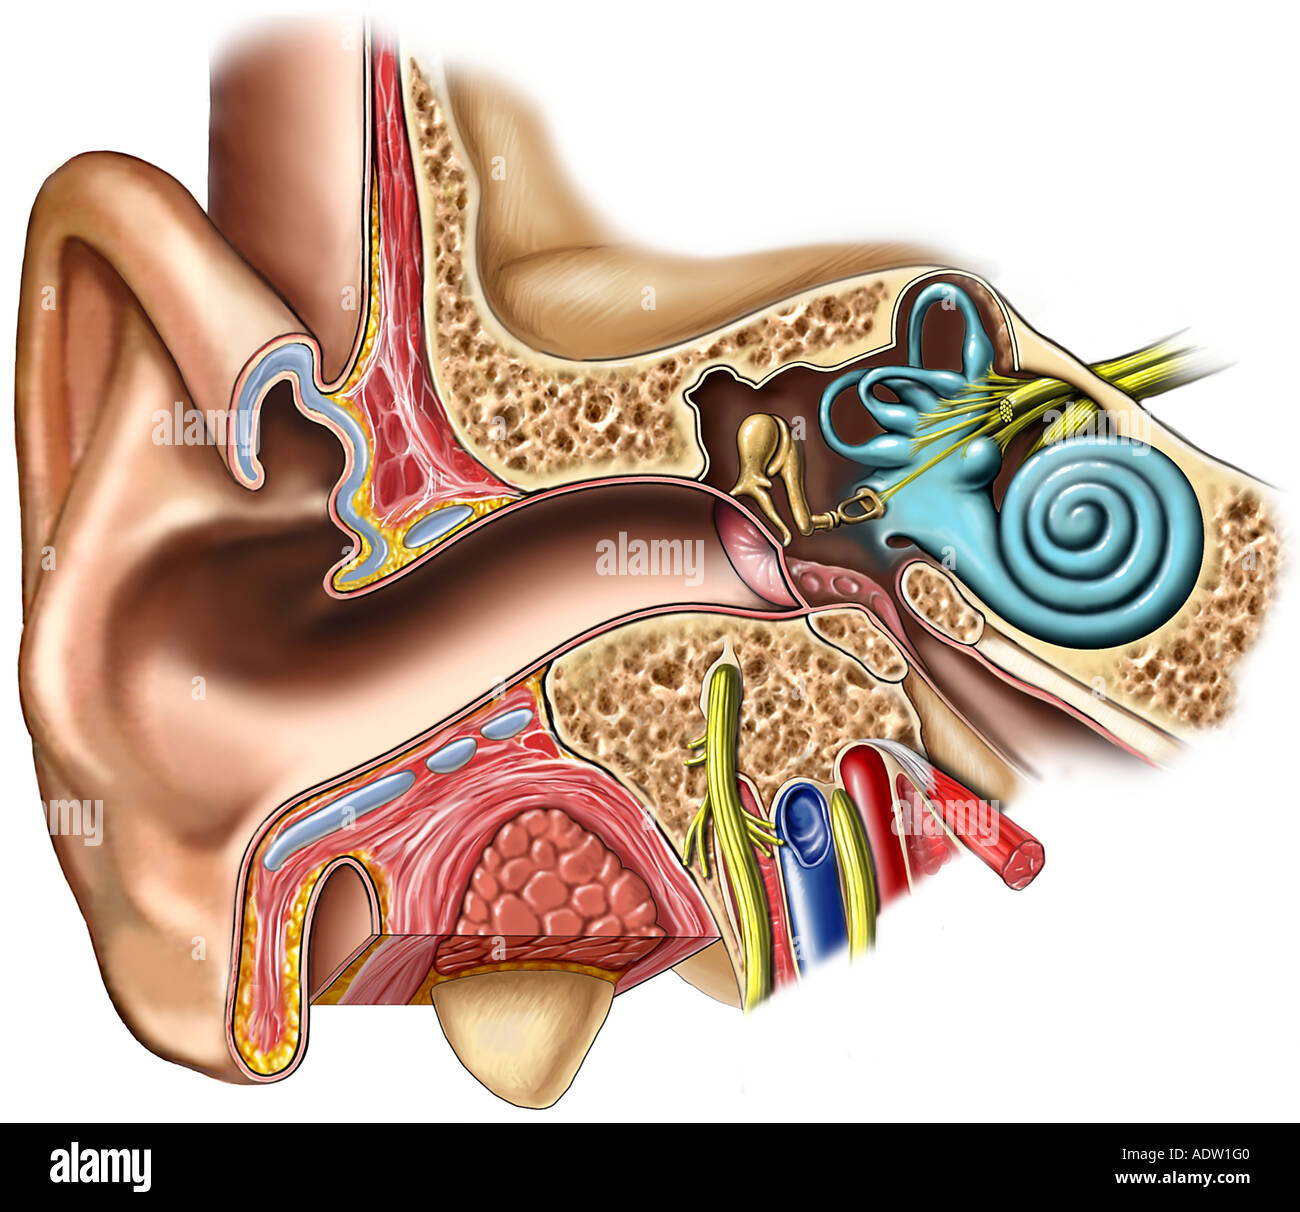 hight resolution of anatomy of the right ear cross section